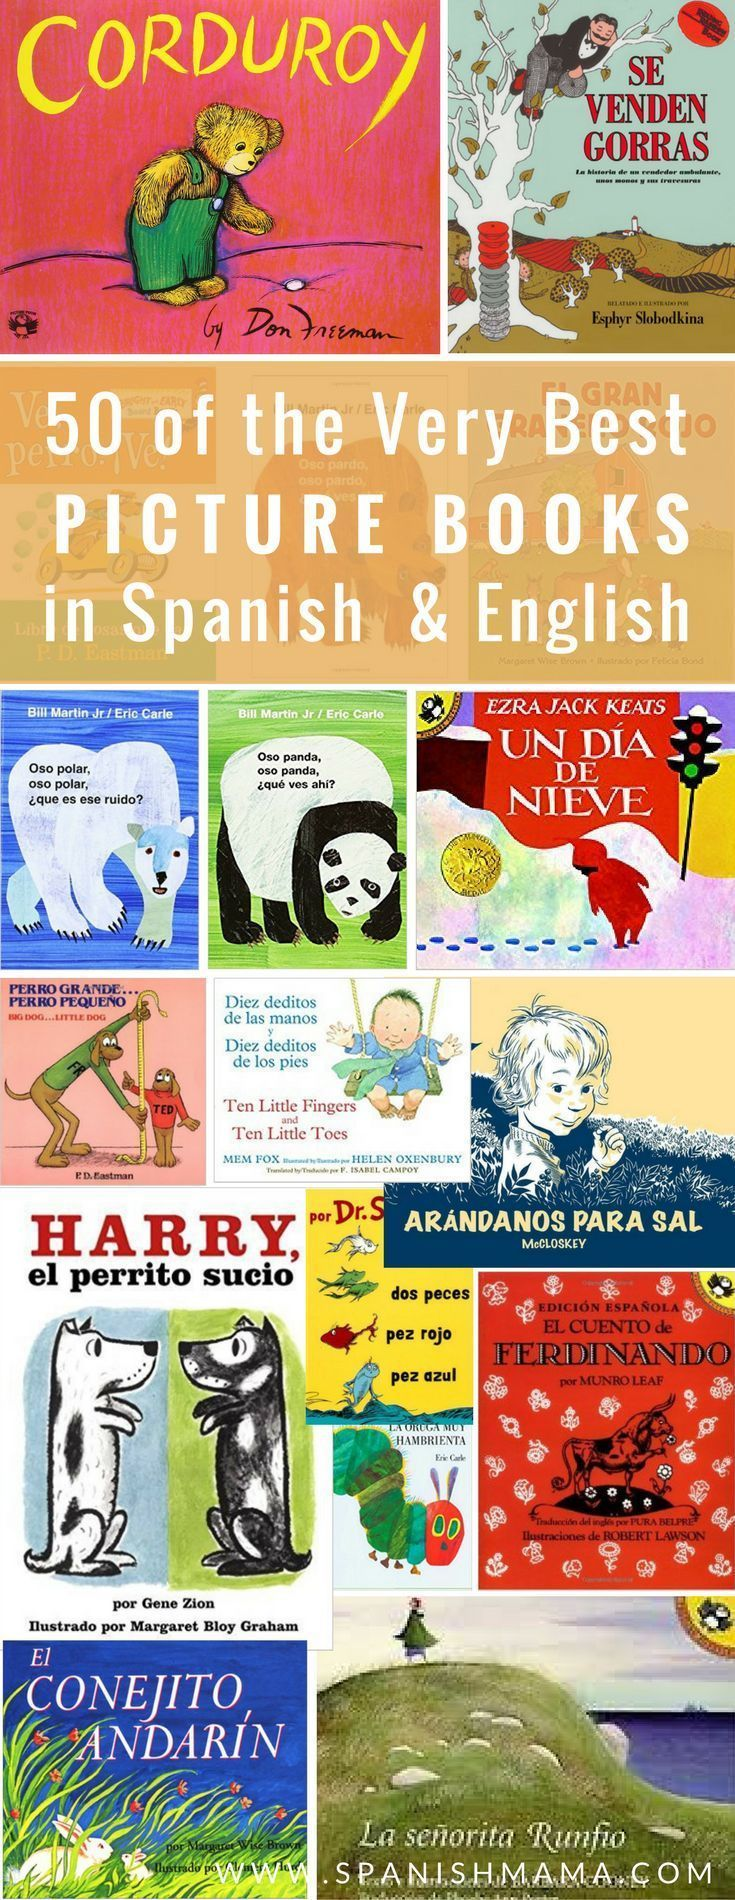 A list of 50 books for kids in Spanish and English. These picture books are a must for Spanglish homes raising bilingual kids!